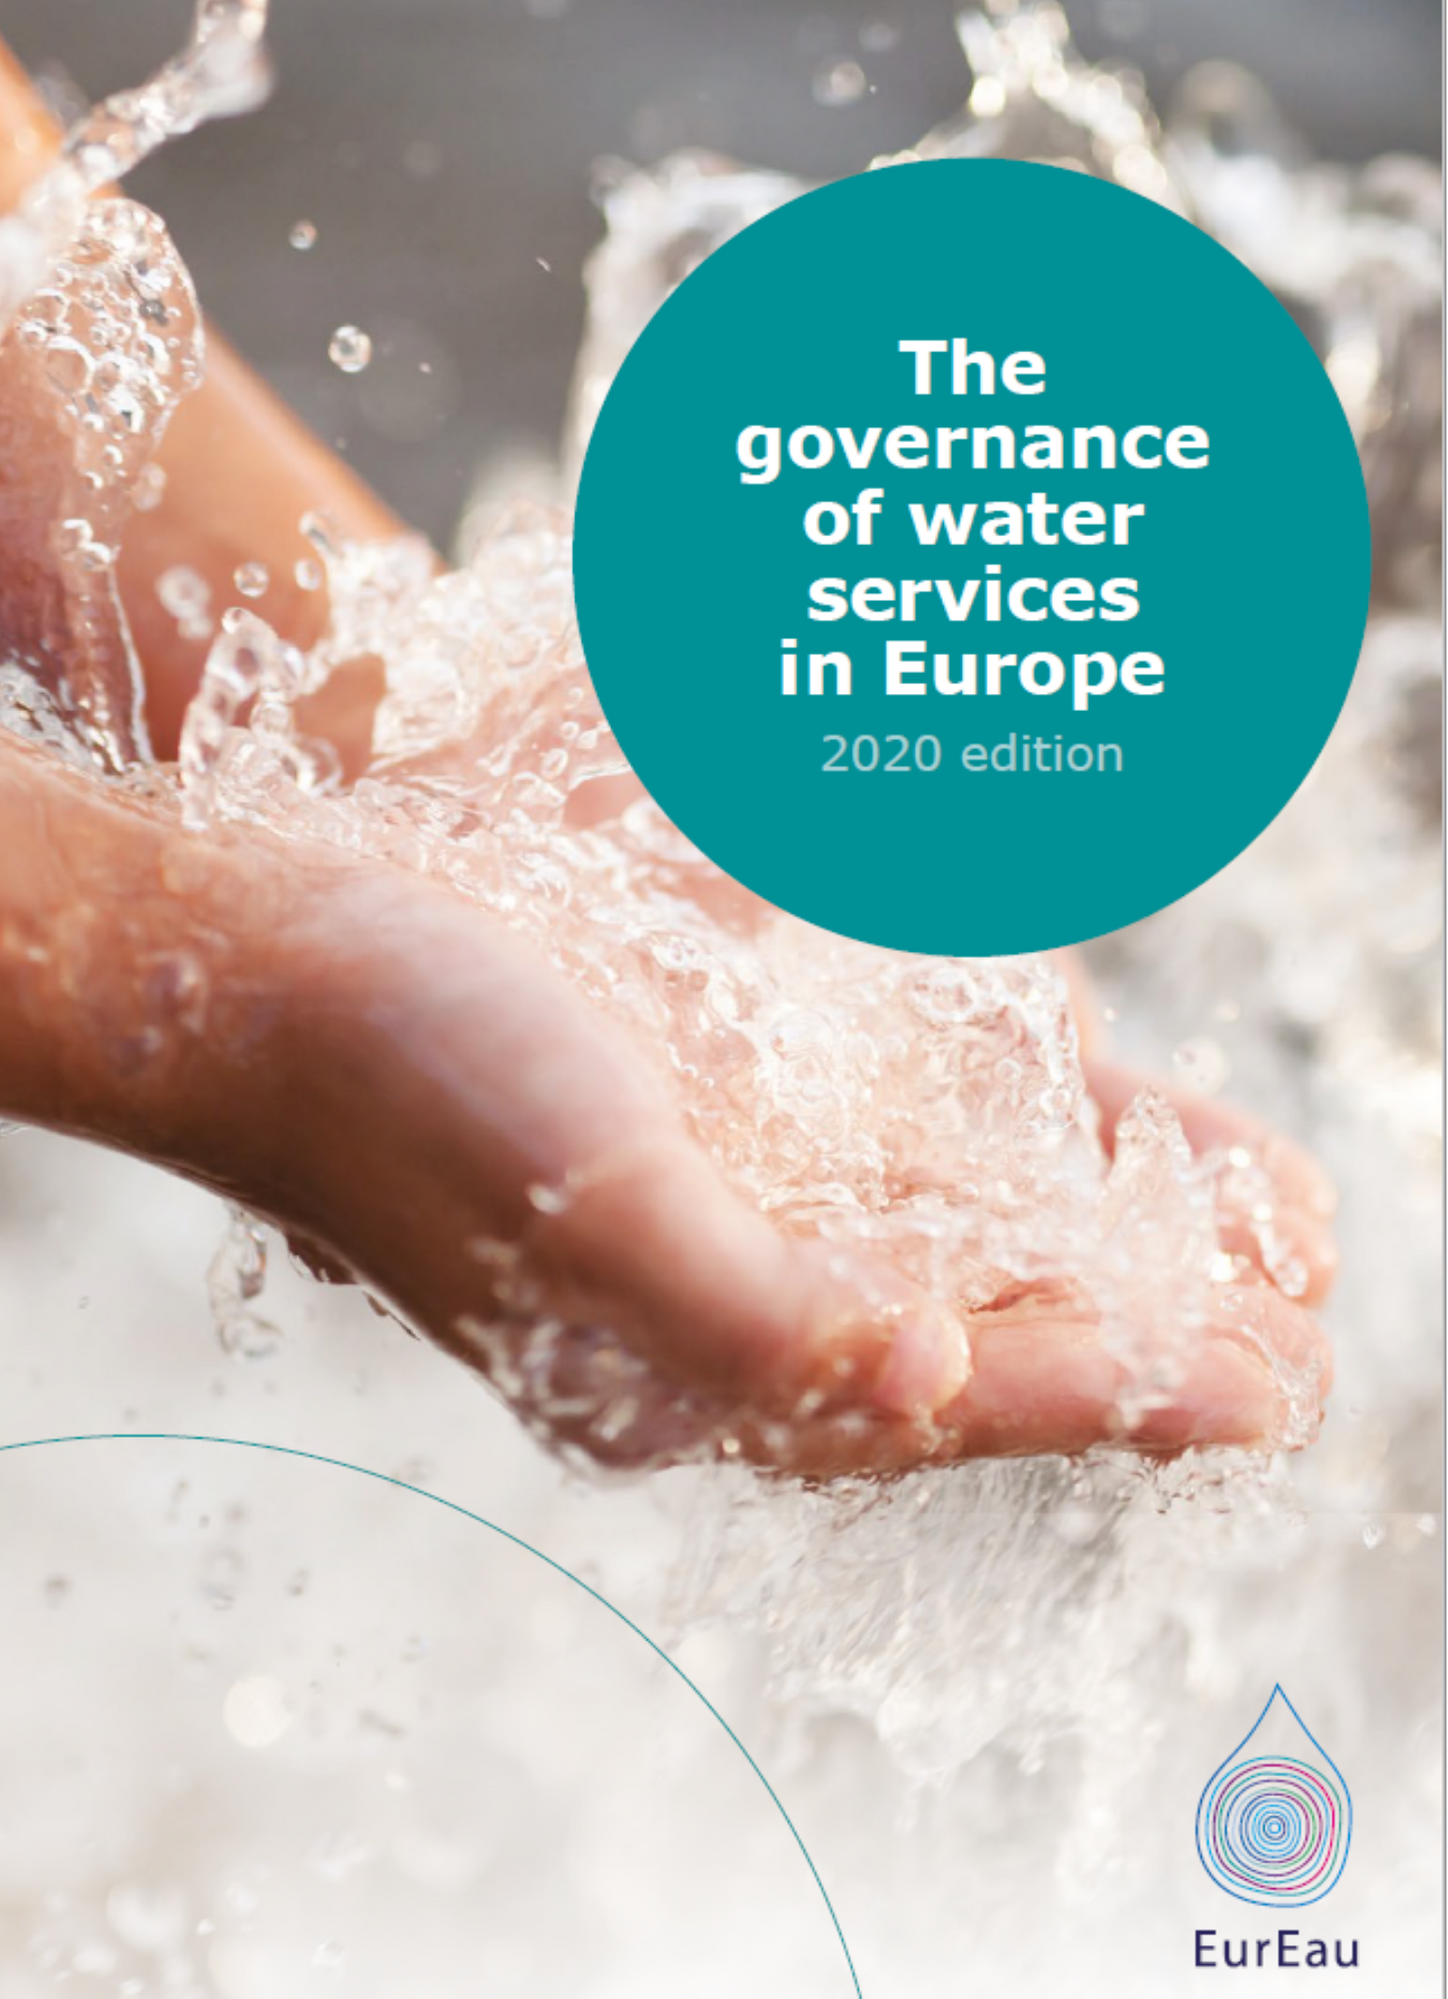 The governance of water services in Europe - 2020 edition